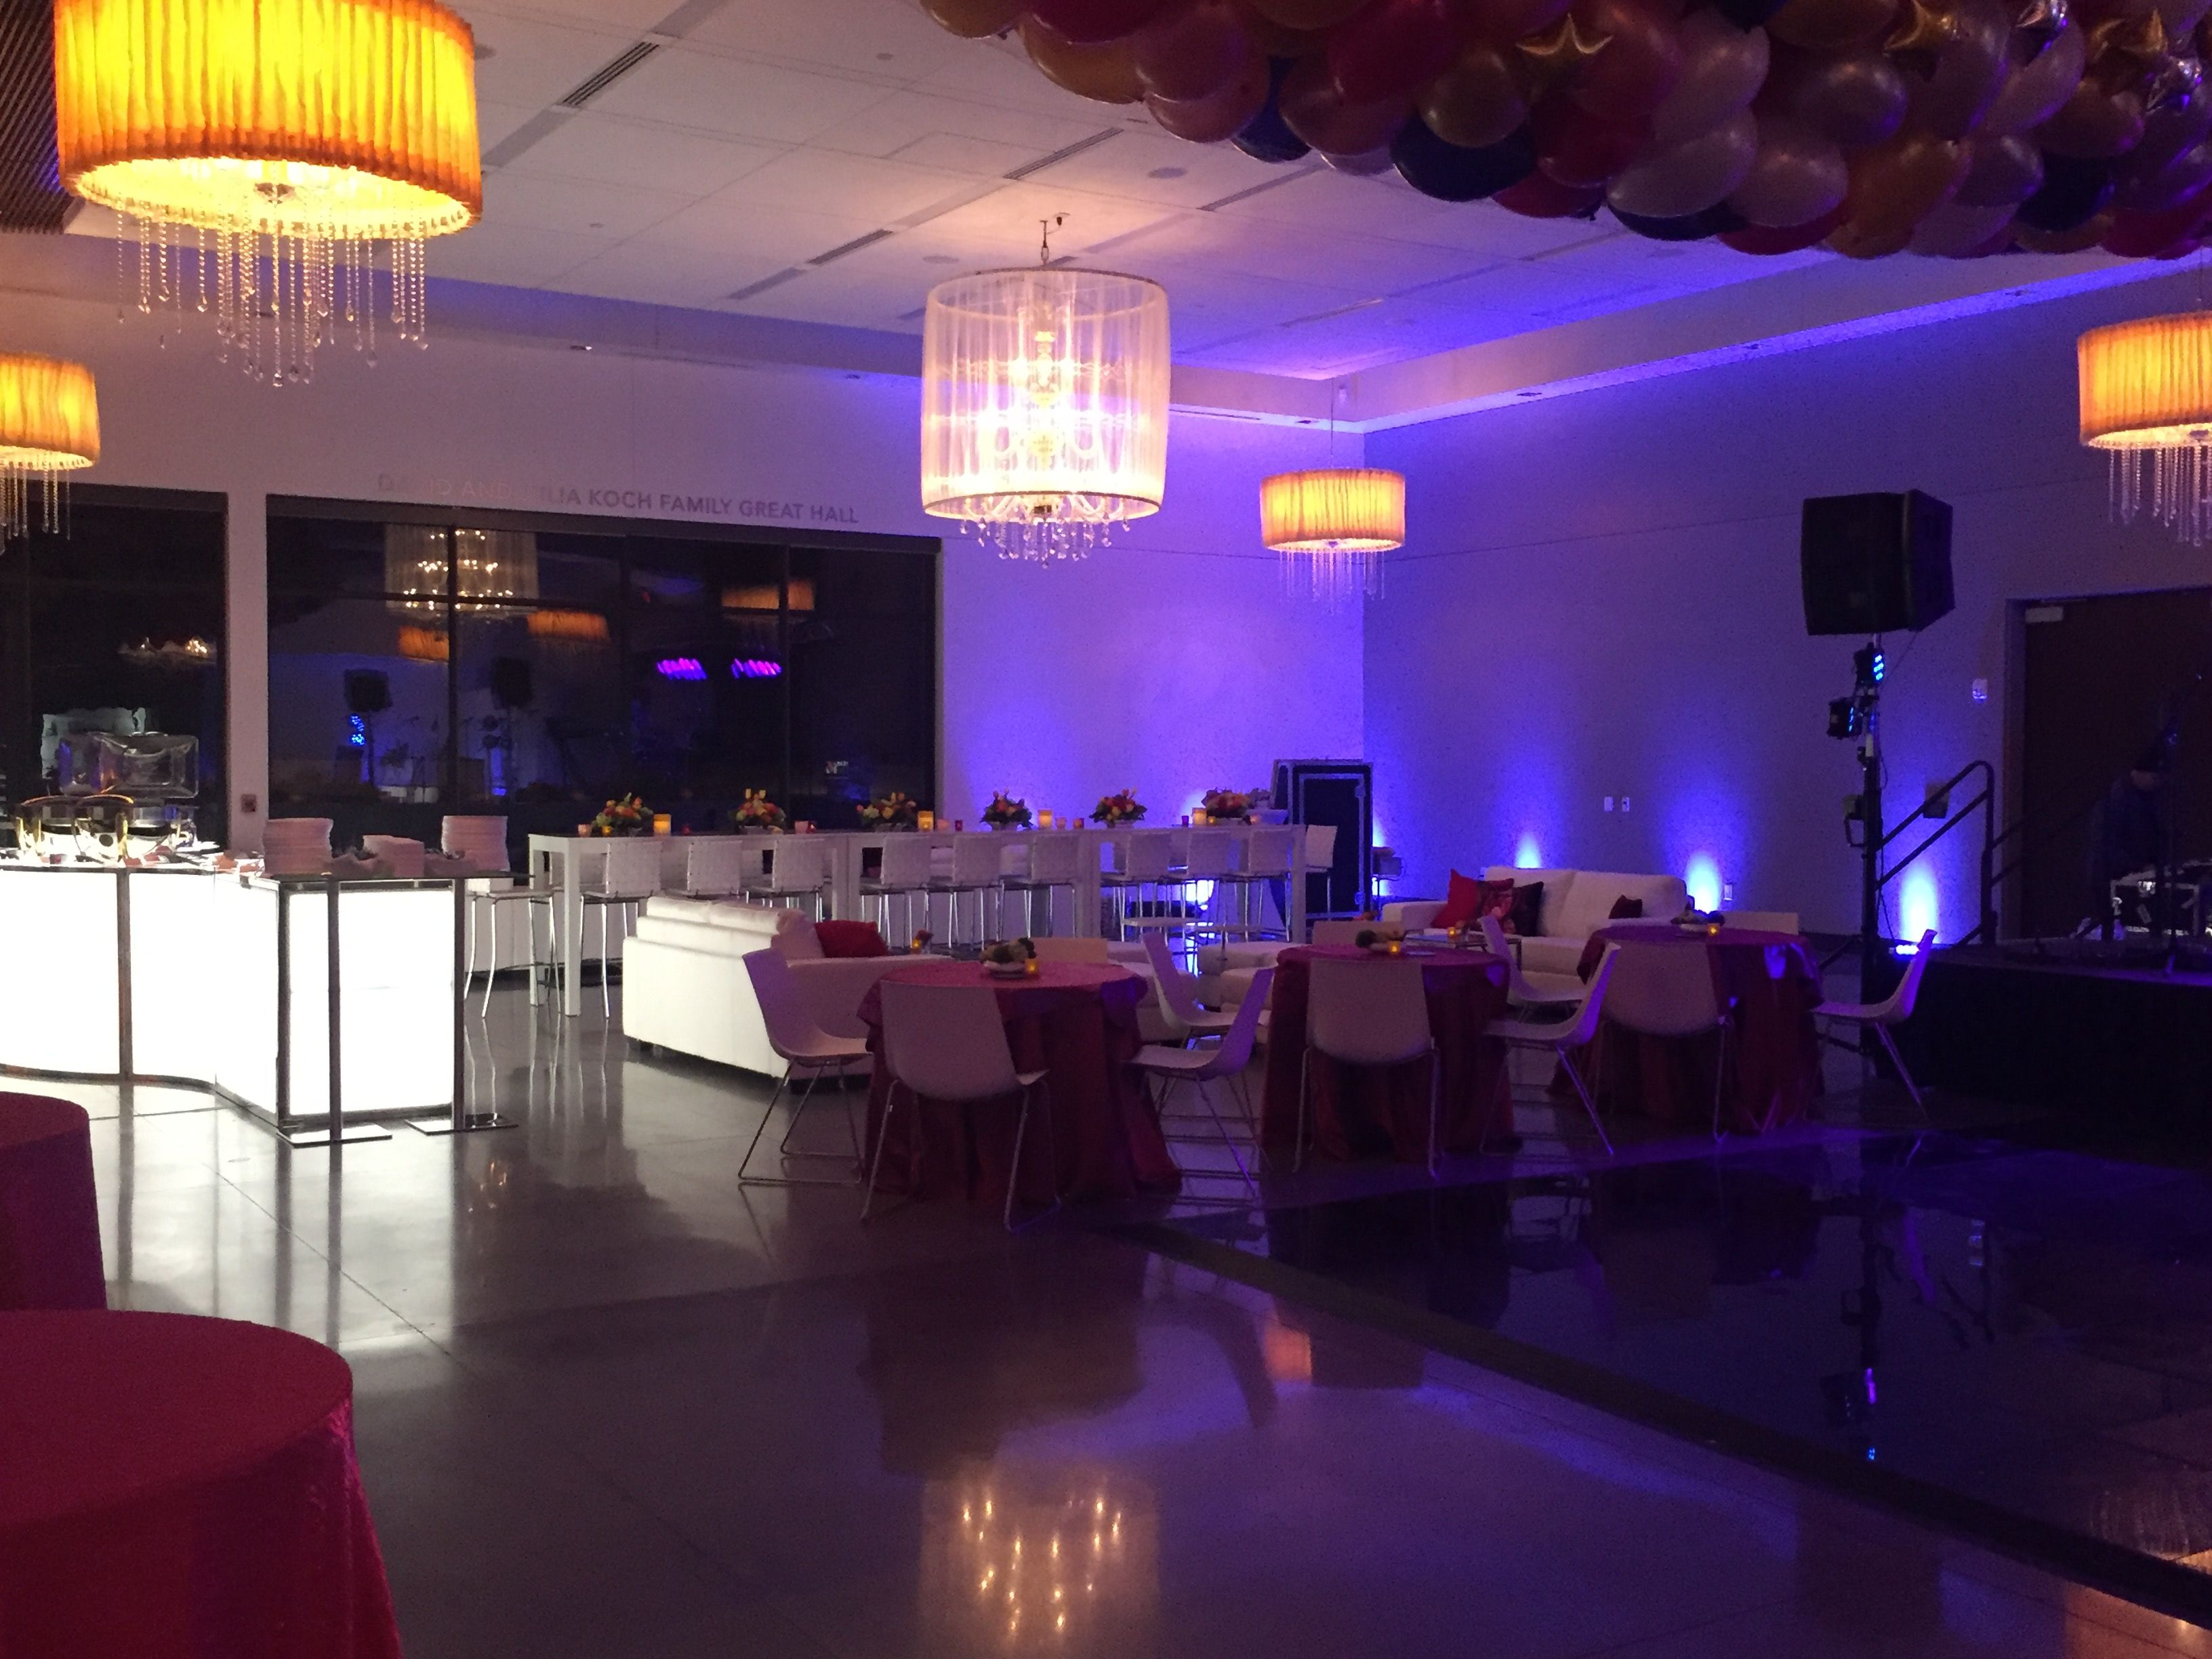 Light fixtures add elegant touch to lounge area at wedding wedding color lighting partyplanning weddingplanning purple wedding seating lounge